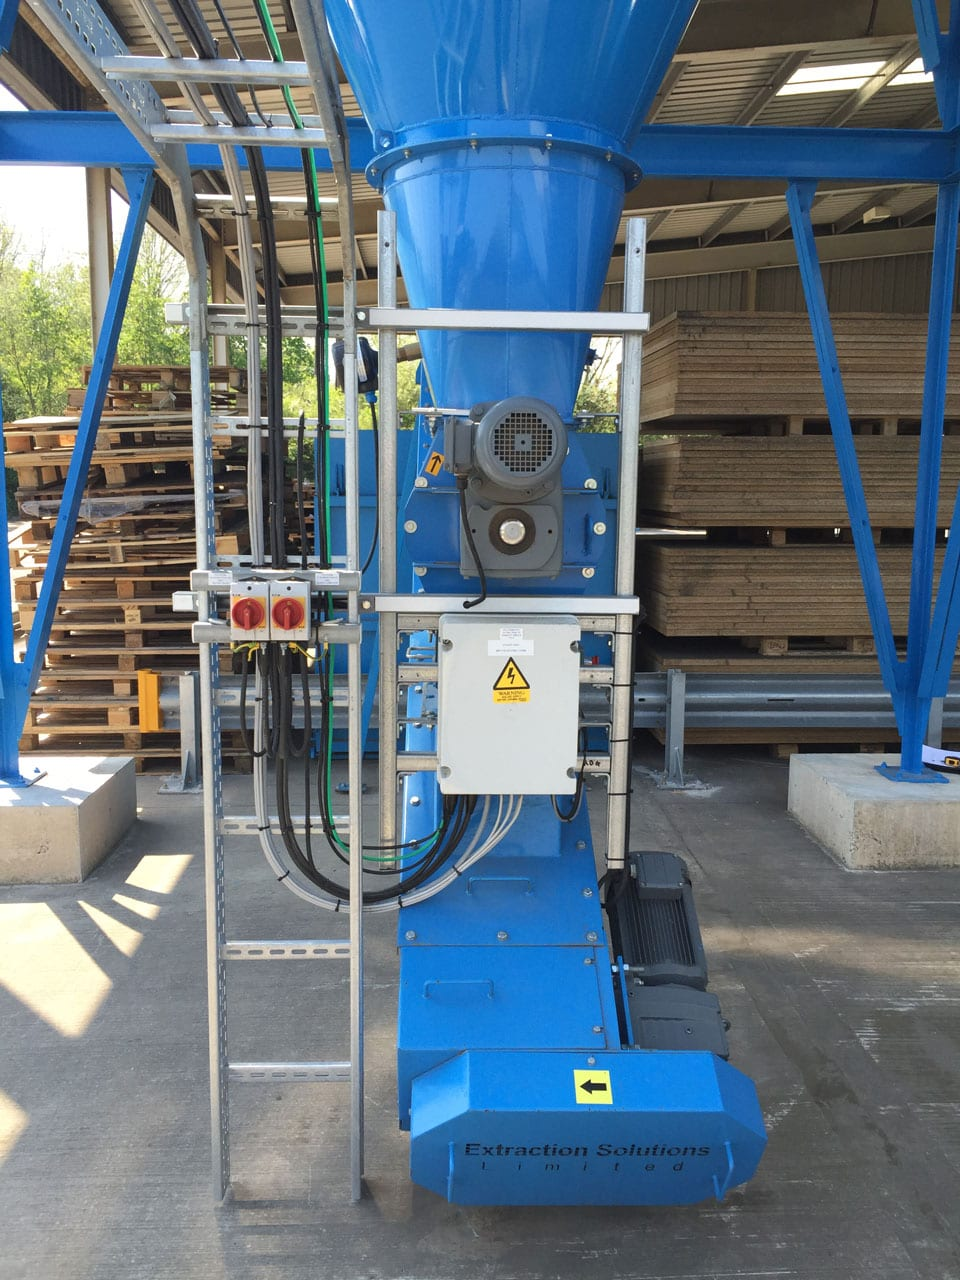 Control Wiring for Dust Extraction System